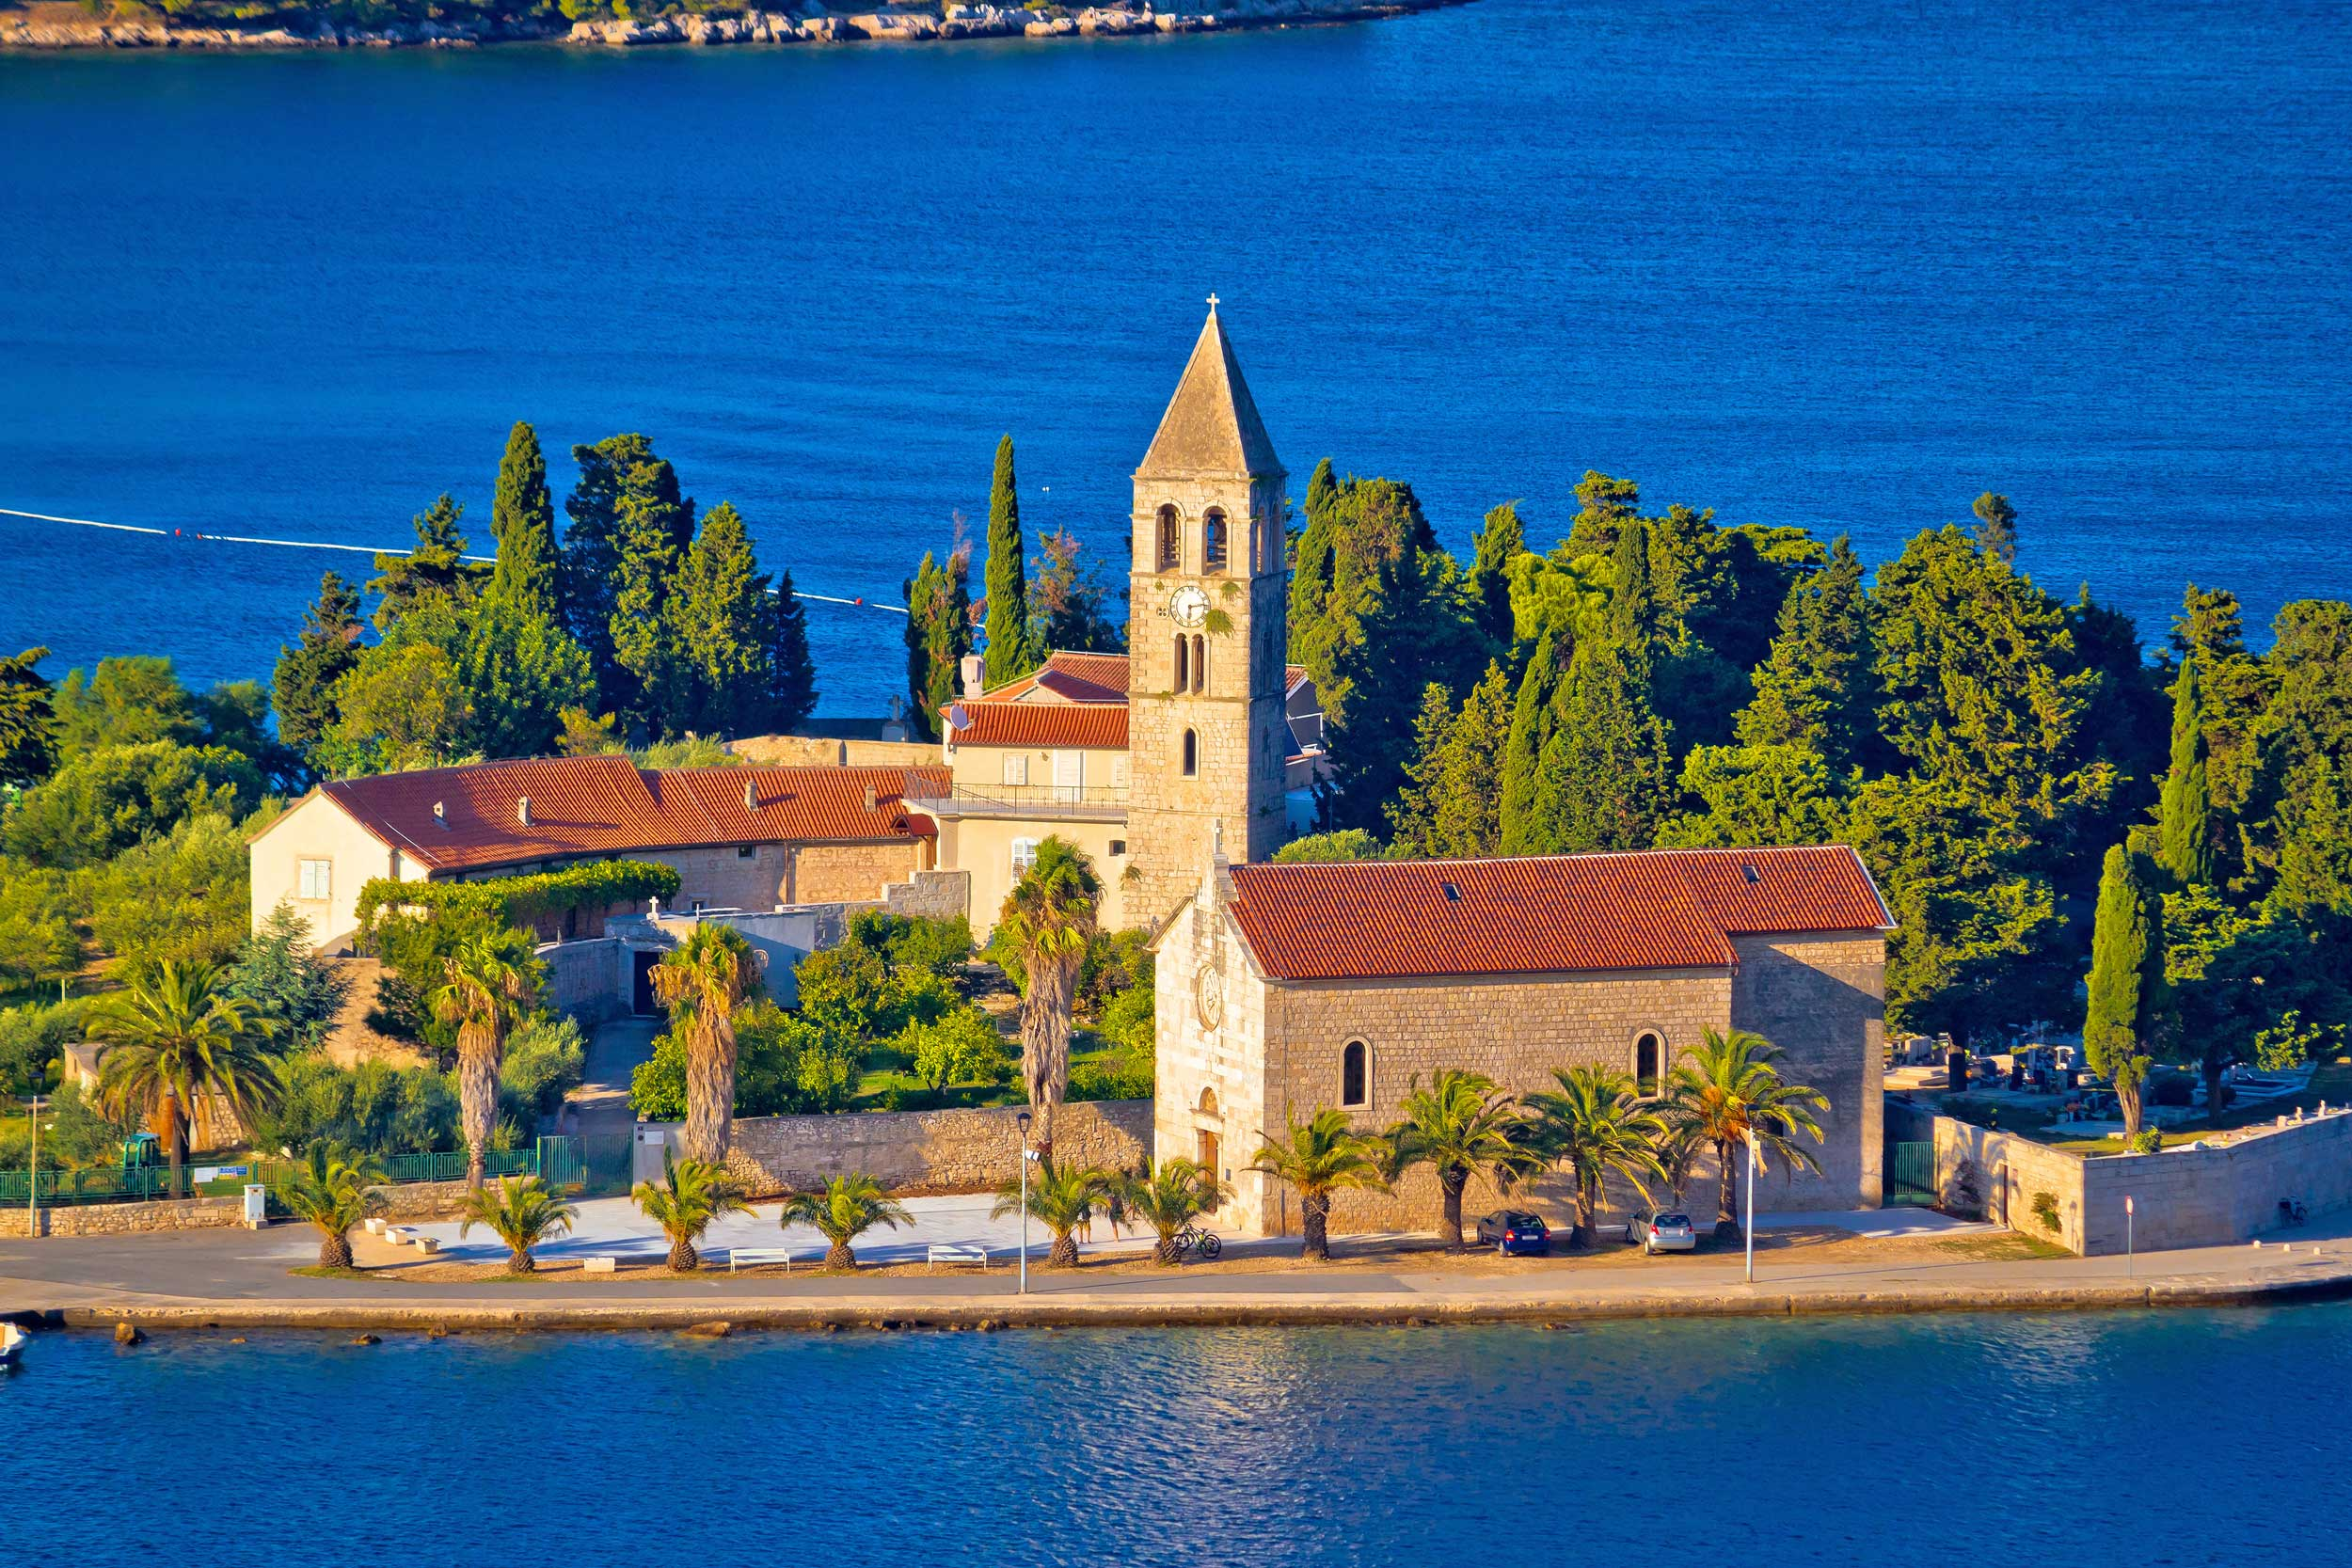 Red-roofed monastery amidst trees on an island, Vis, Croatia